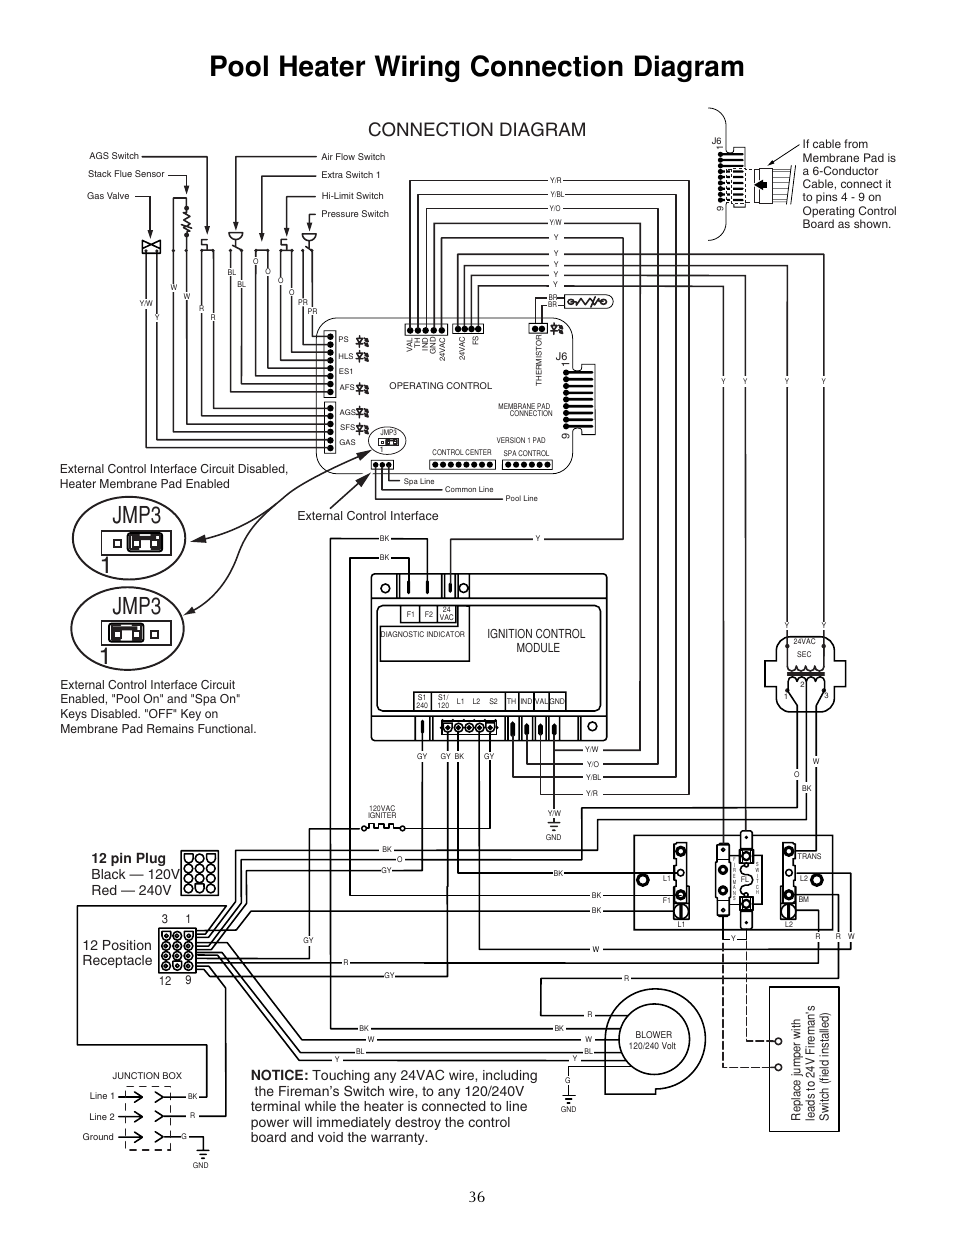 28 Pool Heater Installation Diagram